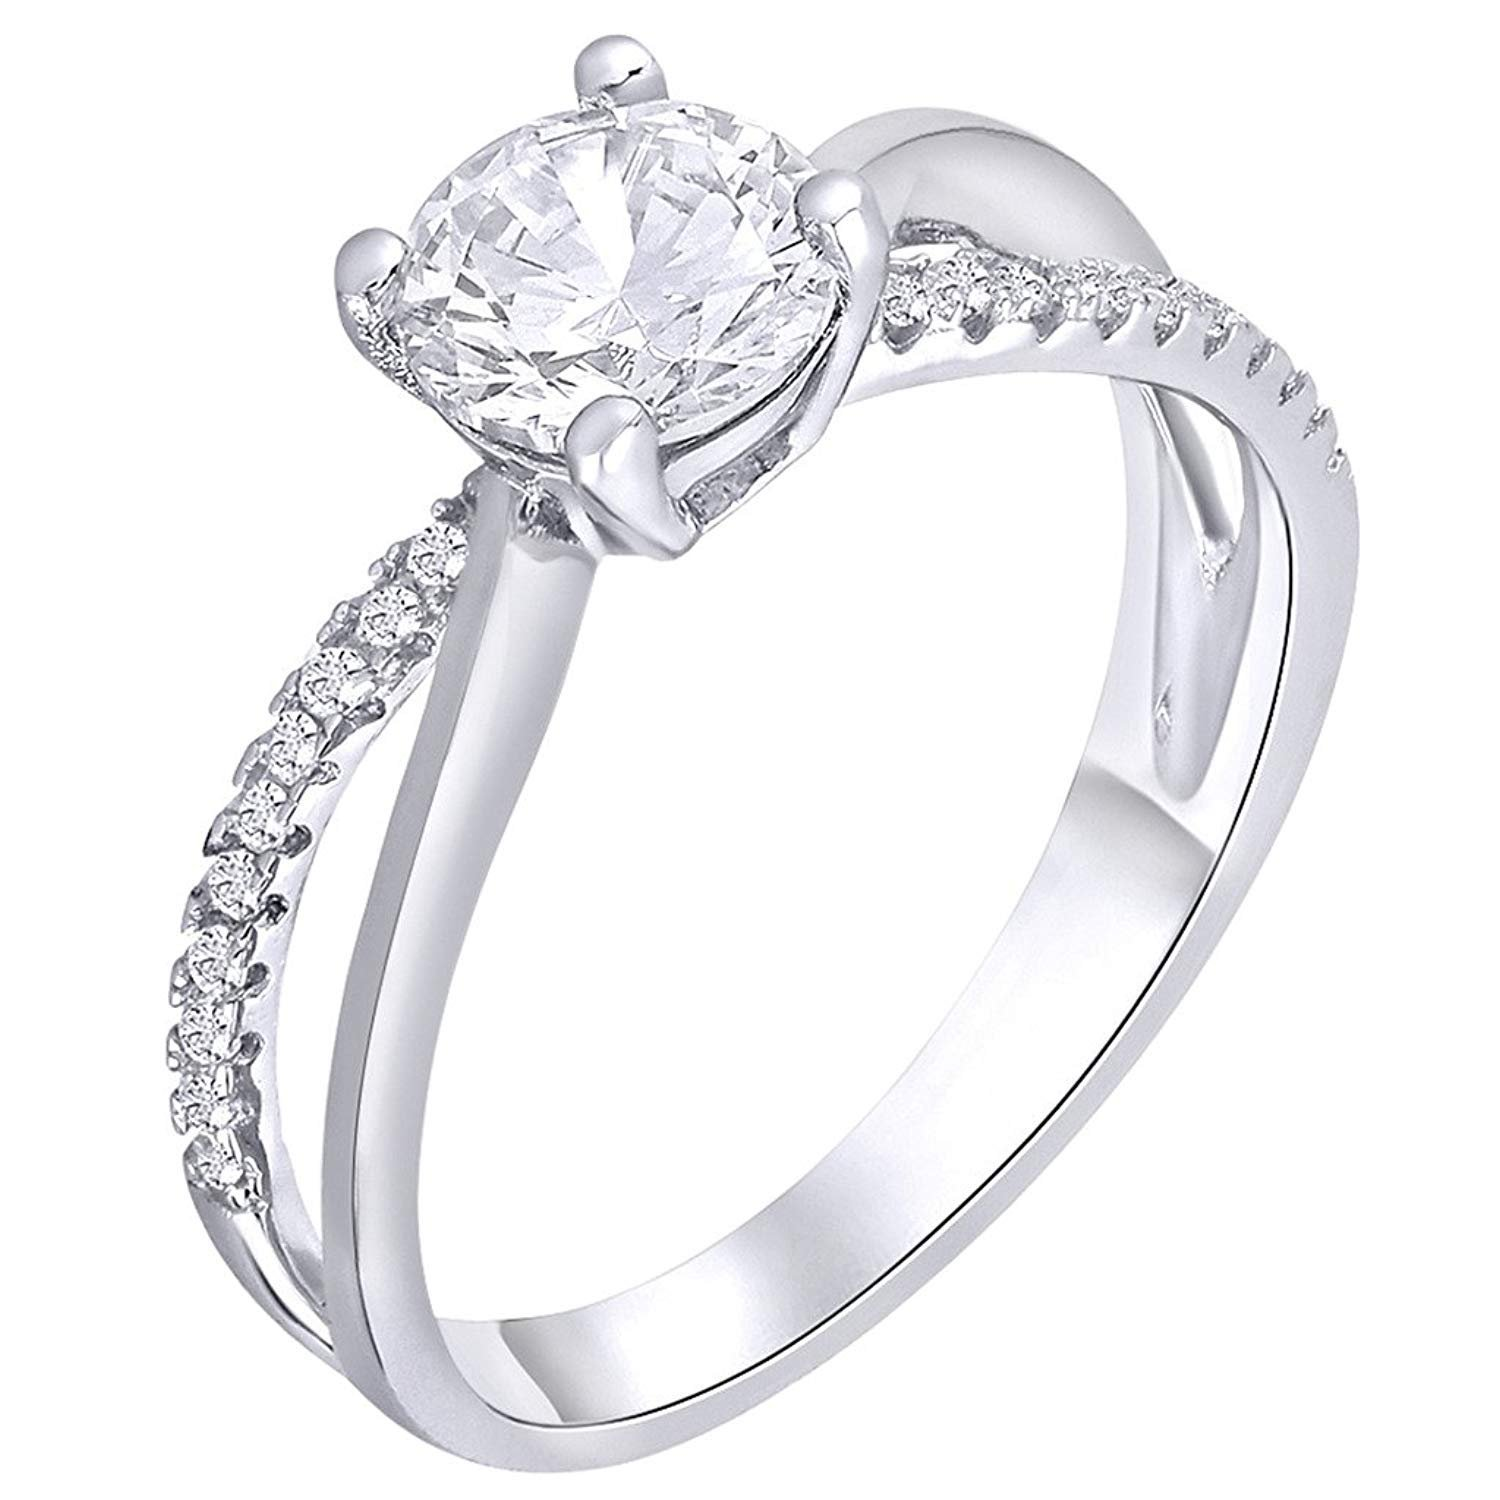 GS /& CO 1.65cts White Round solitaire with accents Unique CZ Diamond Engagement Ring 925 Sterling Silver